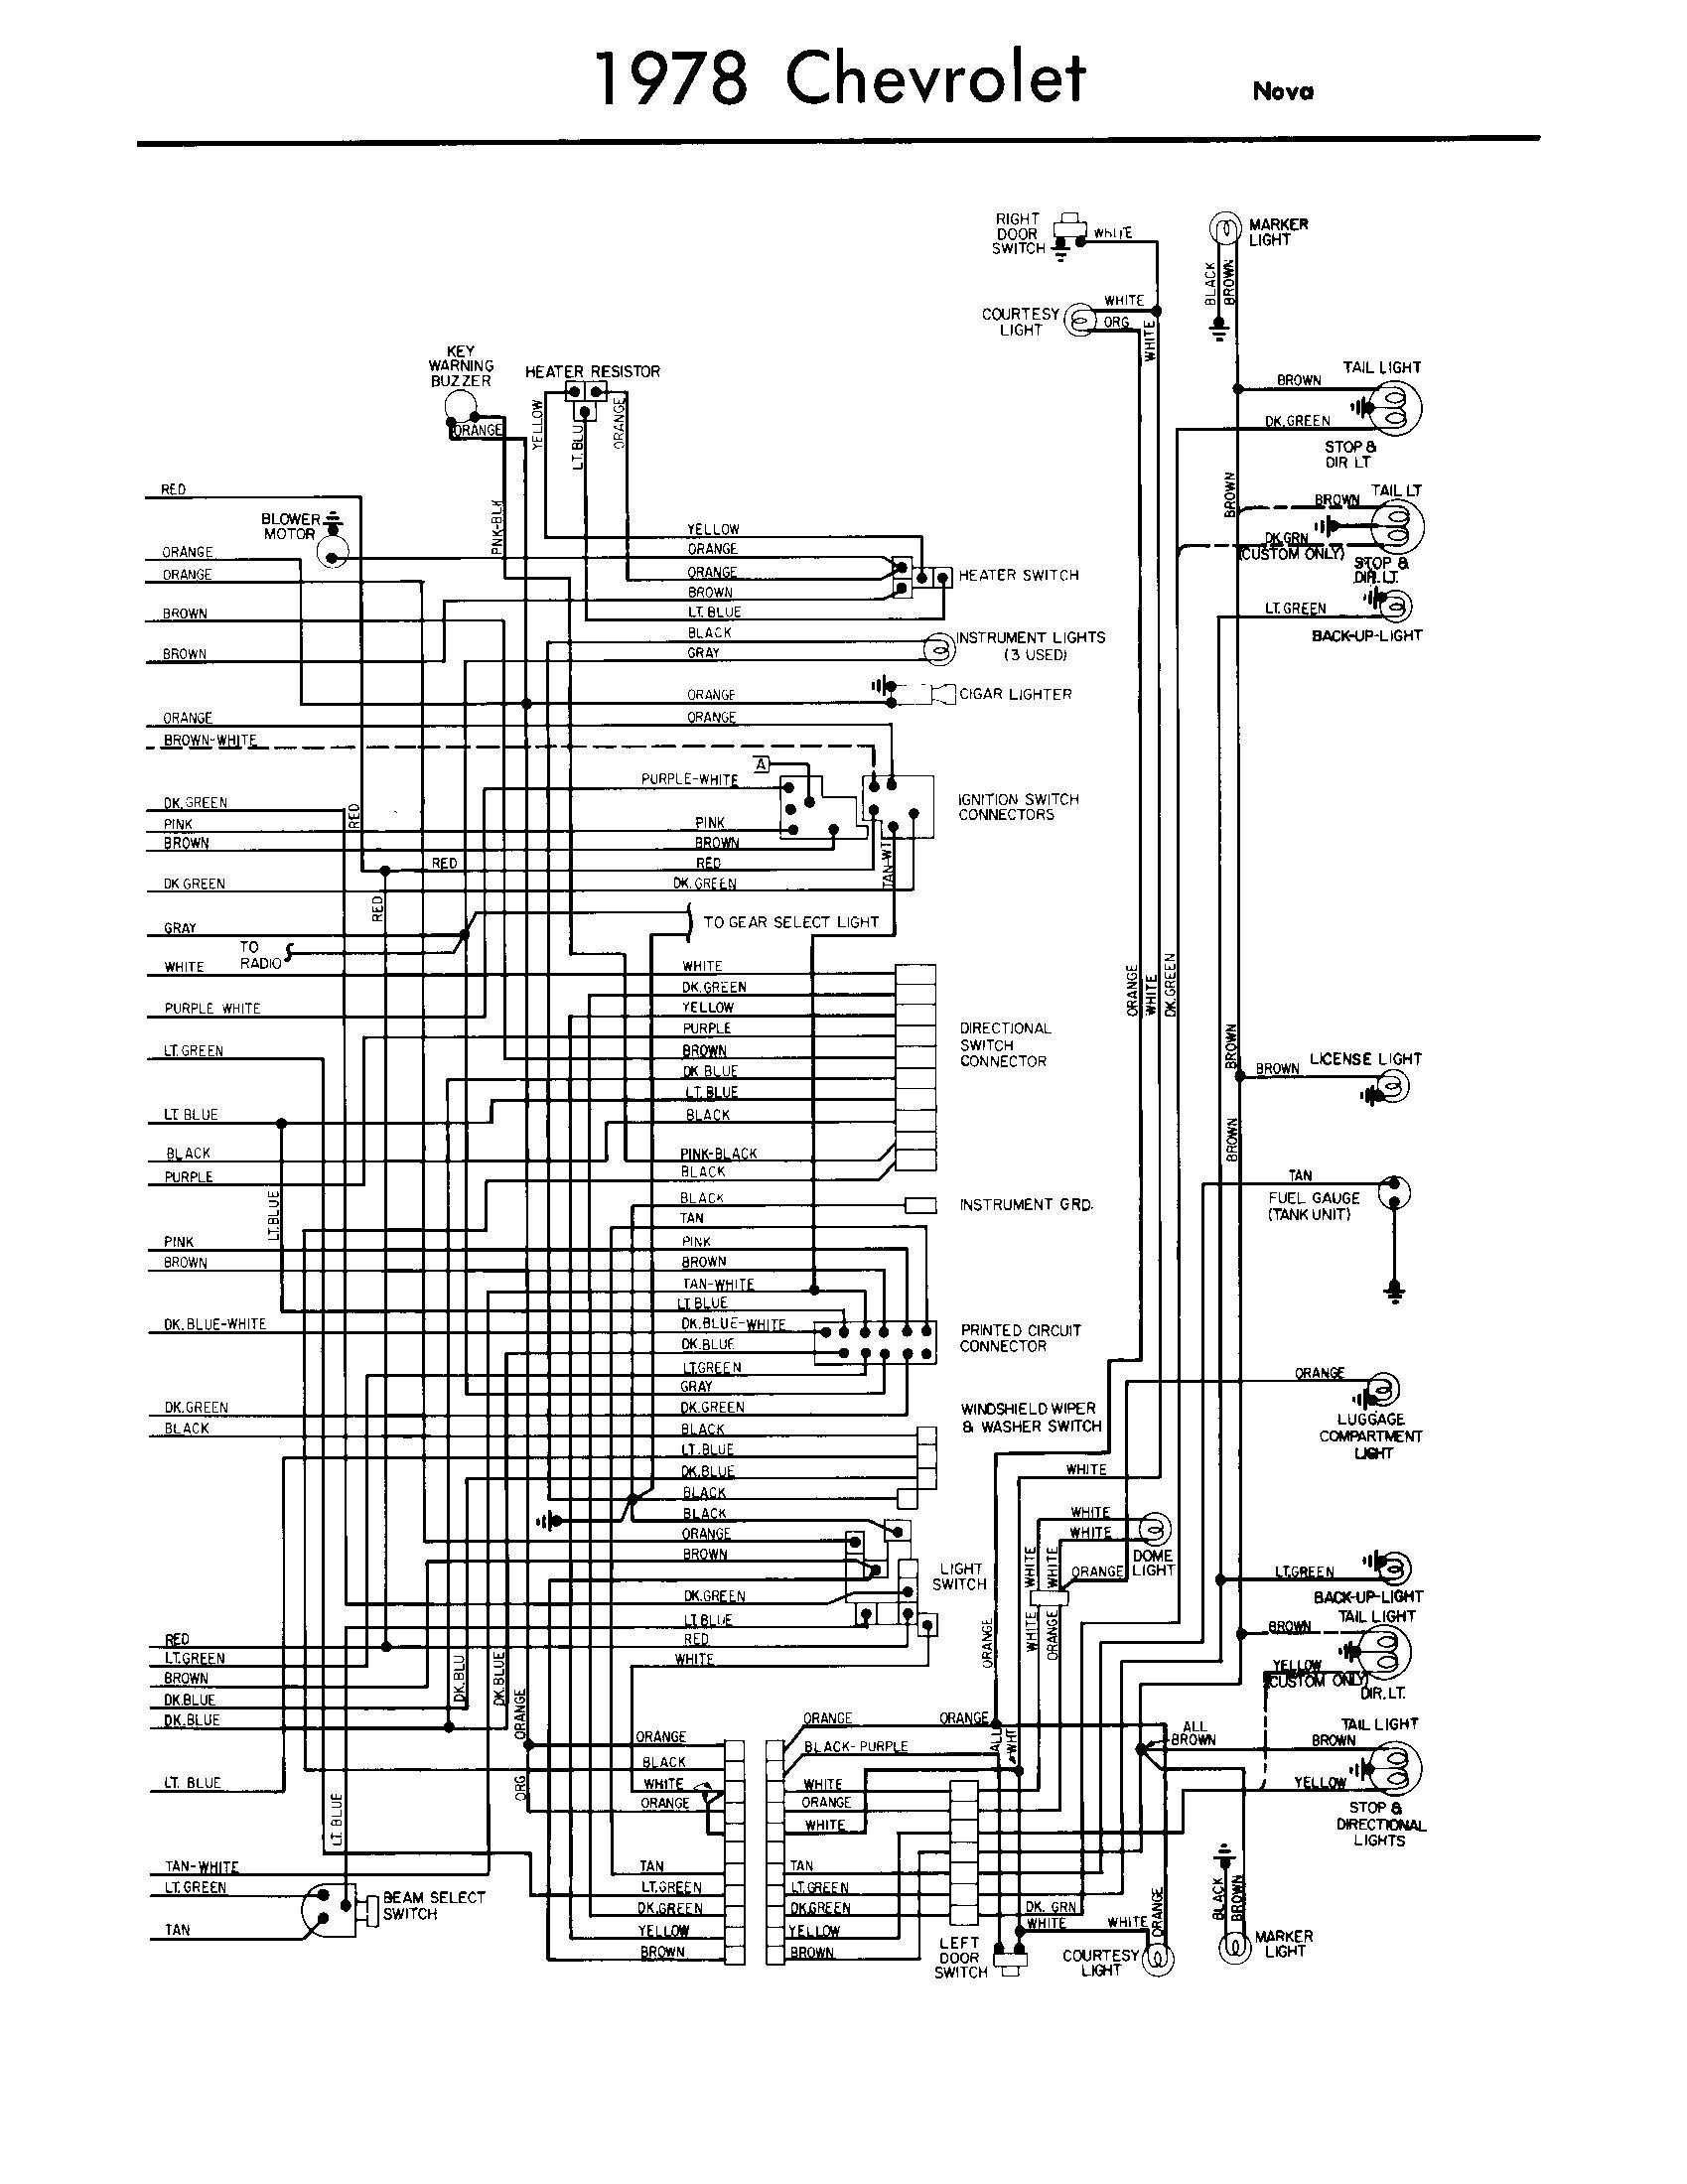 79 Chevy Wiring Diagram - Wiring Diagram Data on malibu timer, malibu ignition diagram, malibu engine diagram, malibu transmission diagram, malibu lighting diagram, malibu accessories, malibu frame diagram, malibu parts diagram, malibu exhaust diagram, malibu wheels, malibu suspension diagram,